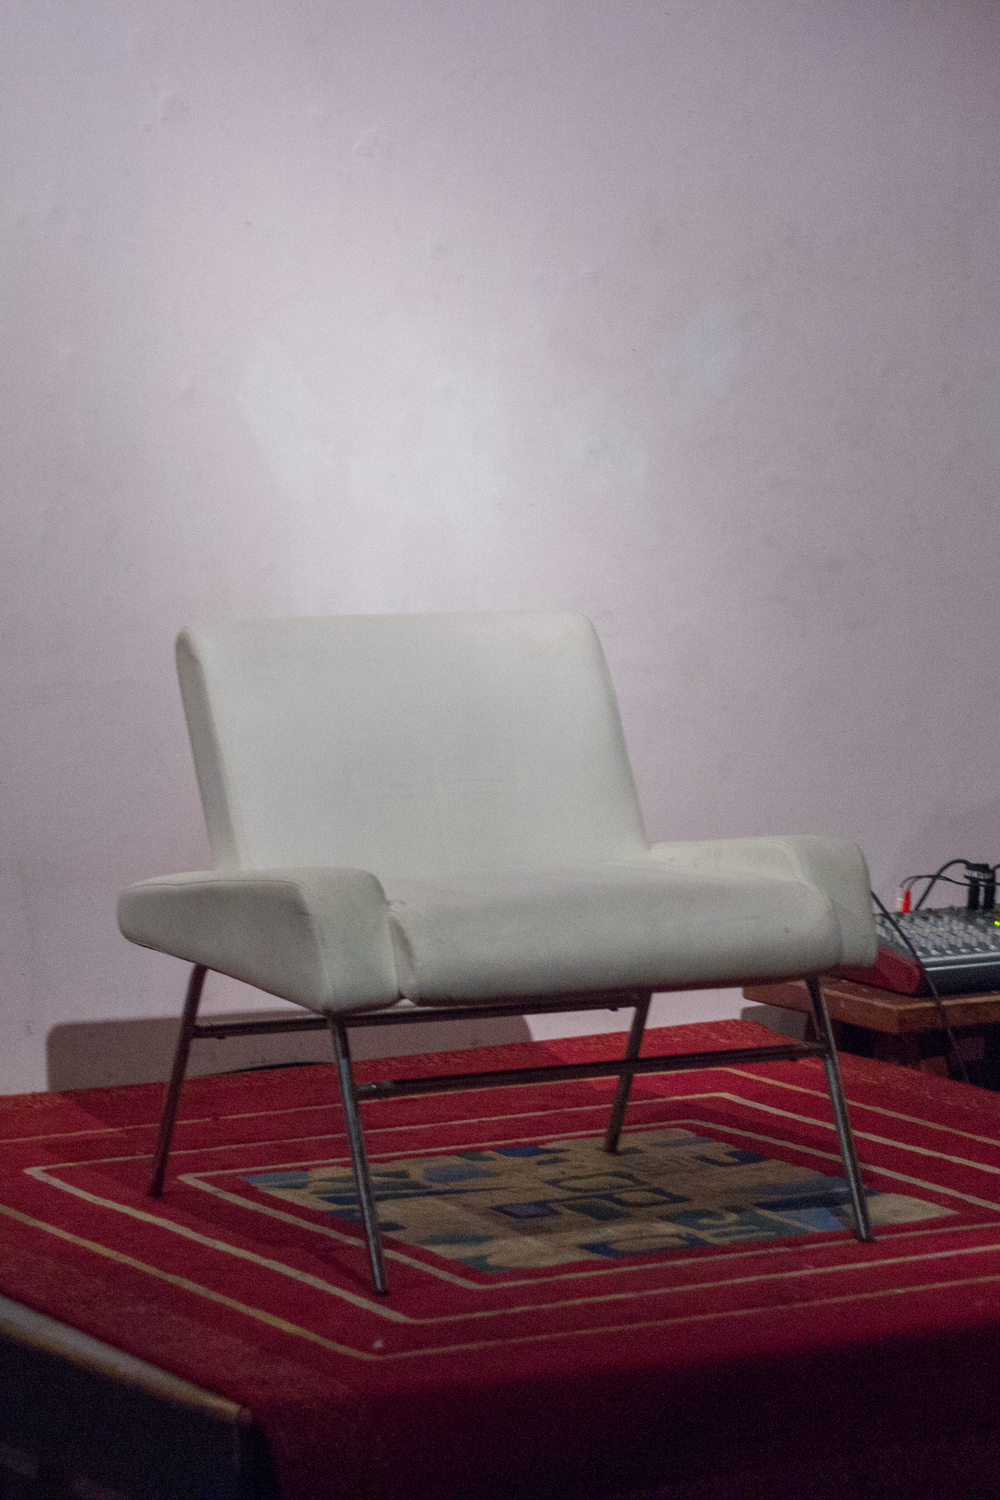 A simple chair whose only desire is to find an owner that will love and cherish it